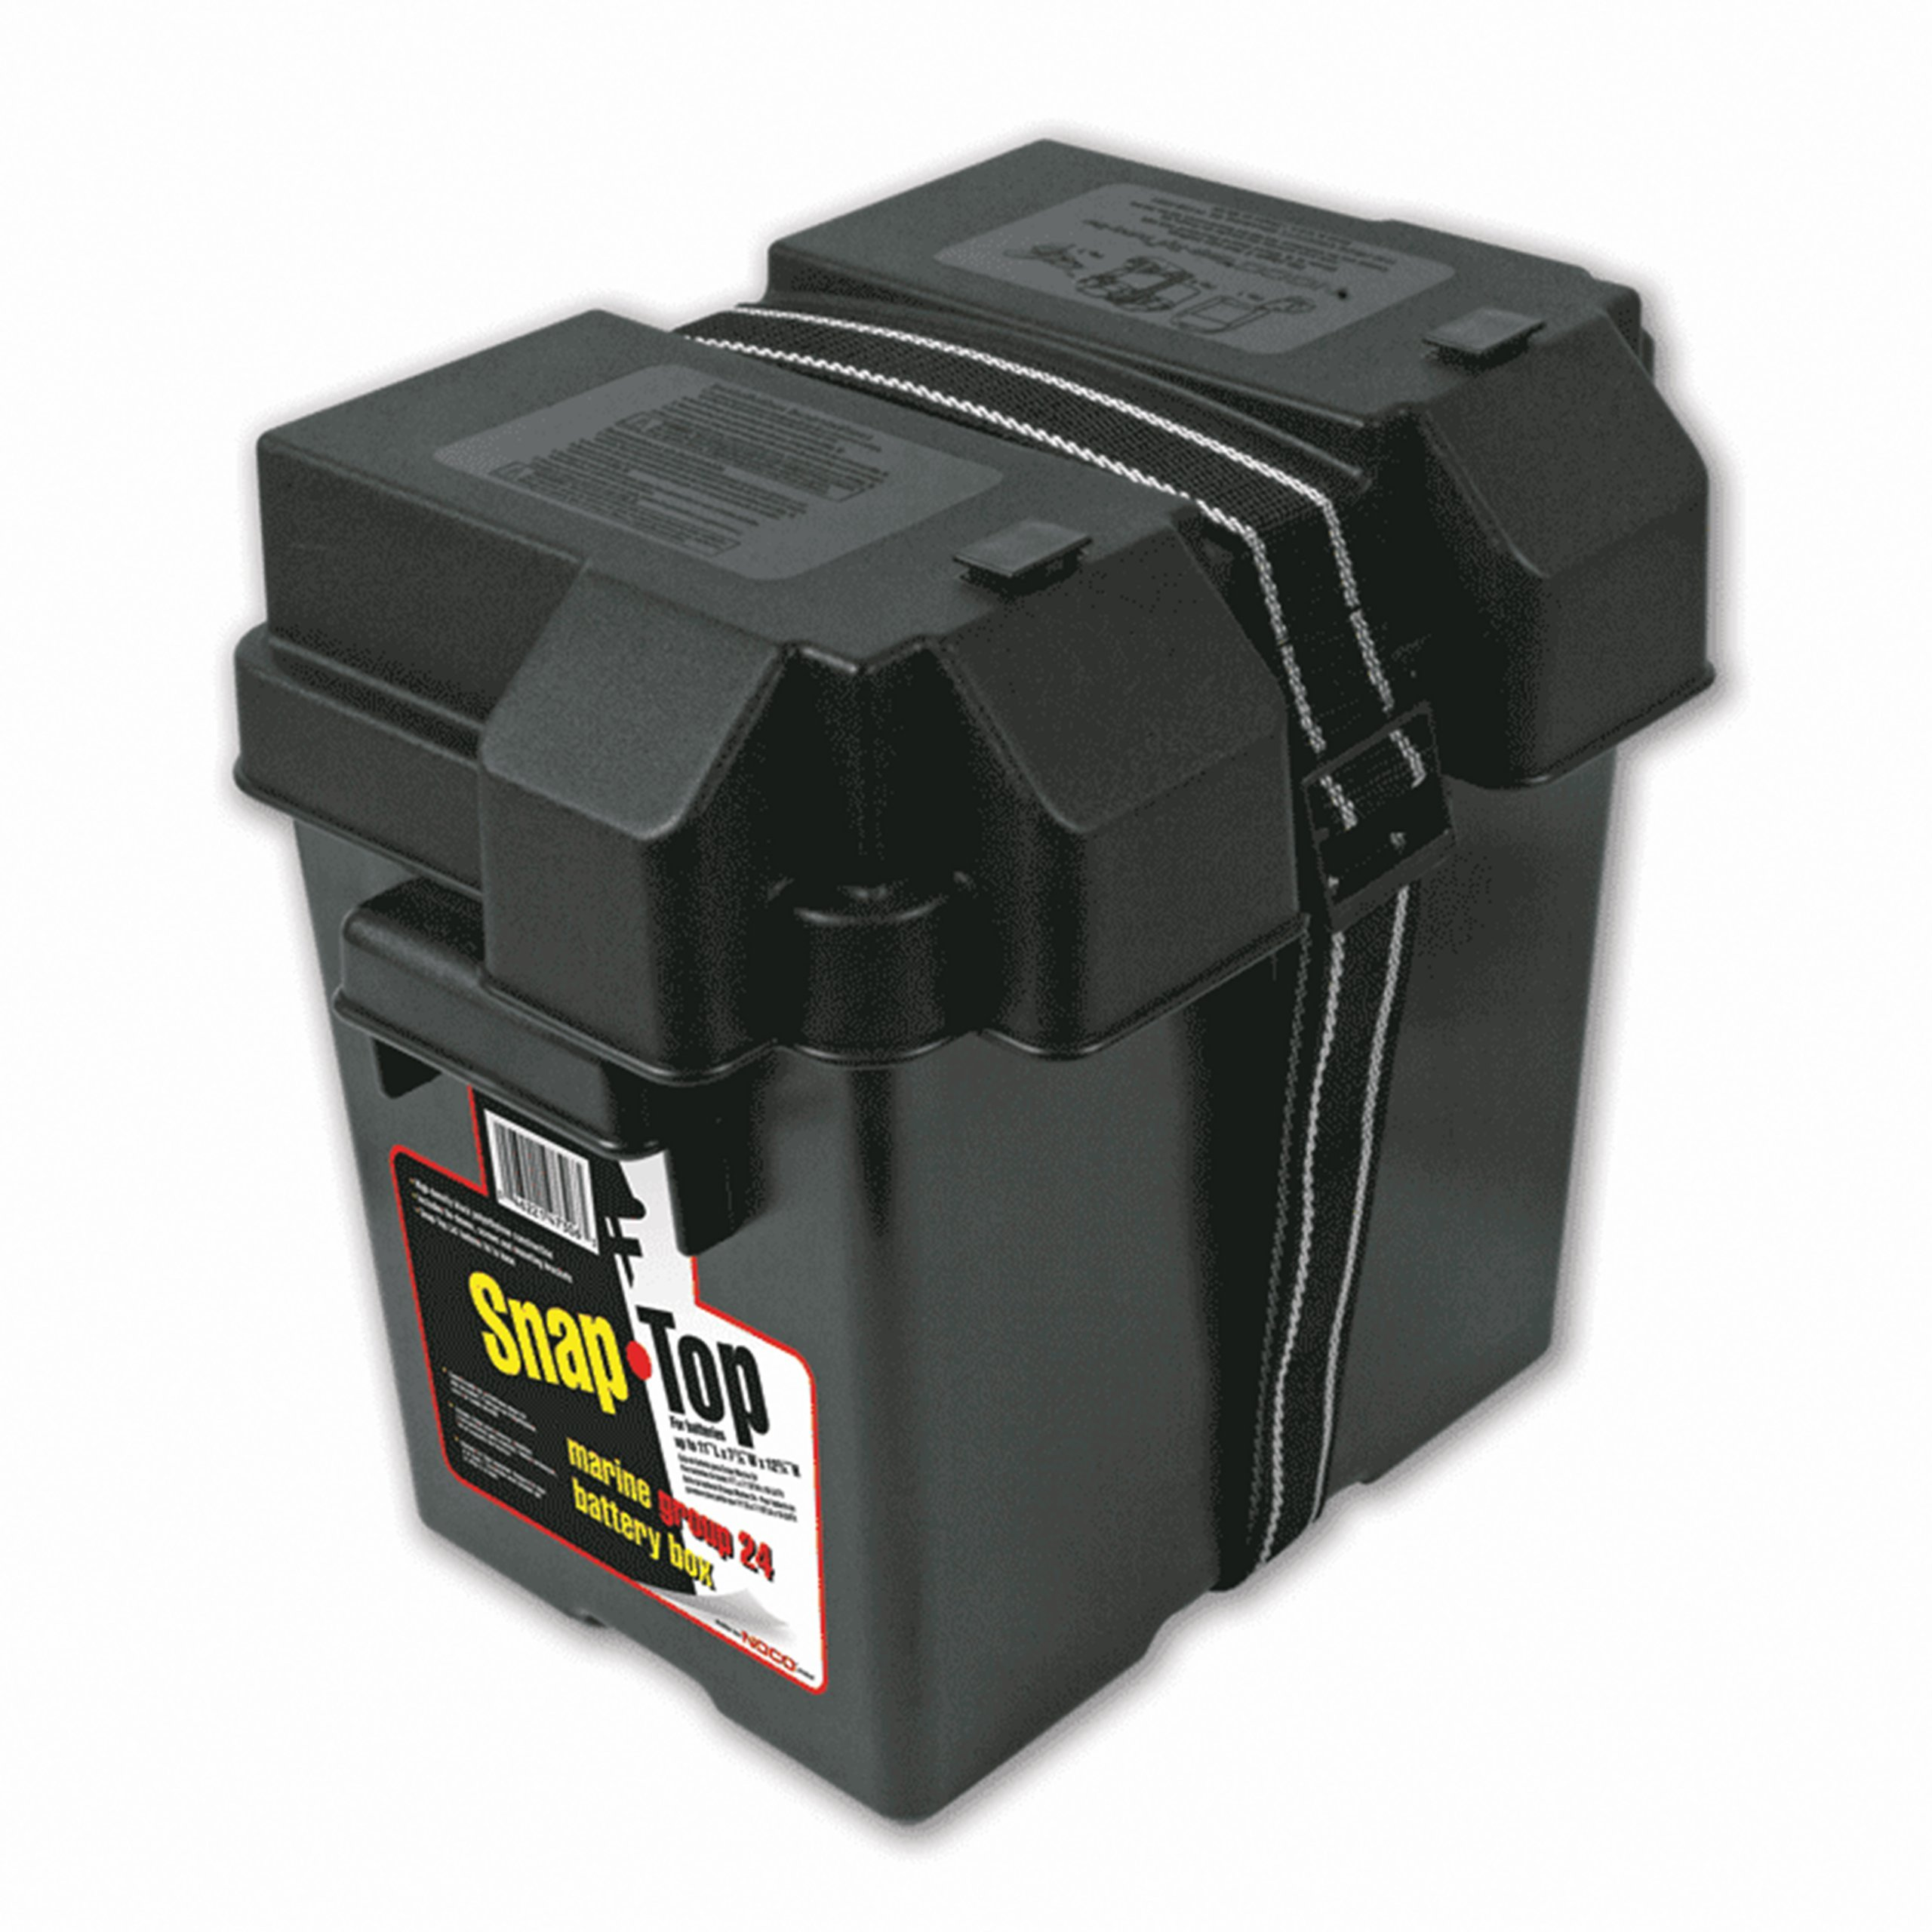 6 volt battery box for sale. Black Bedroom Furniture Sets. Home Design Ideas